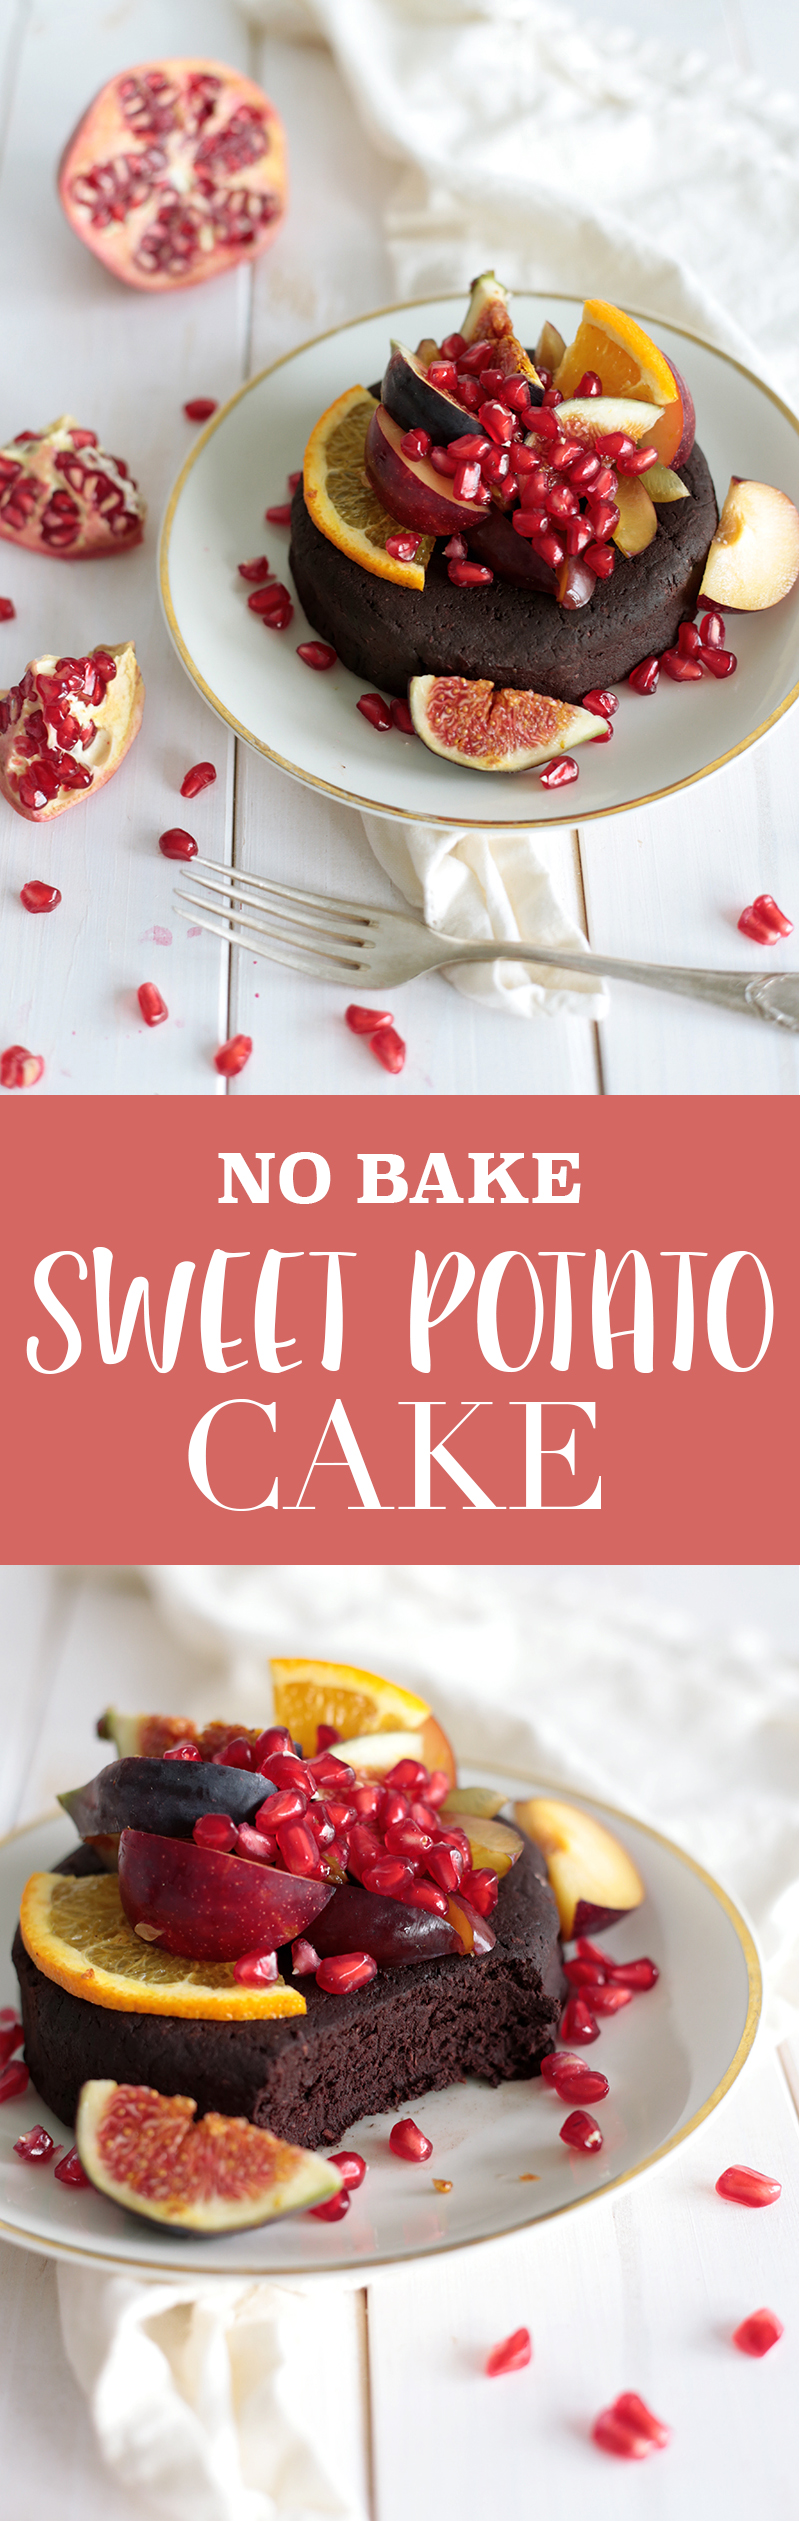 No-Bake Sweet Potato Cake